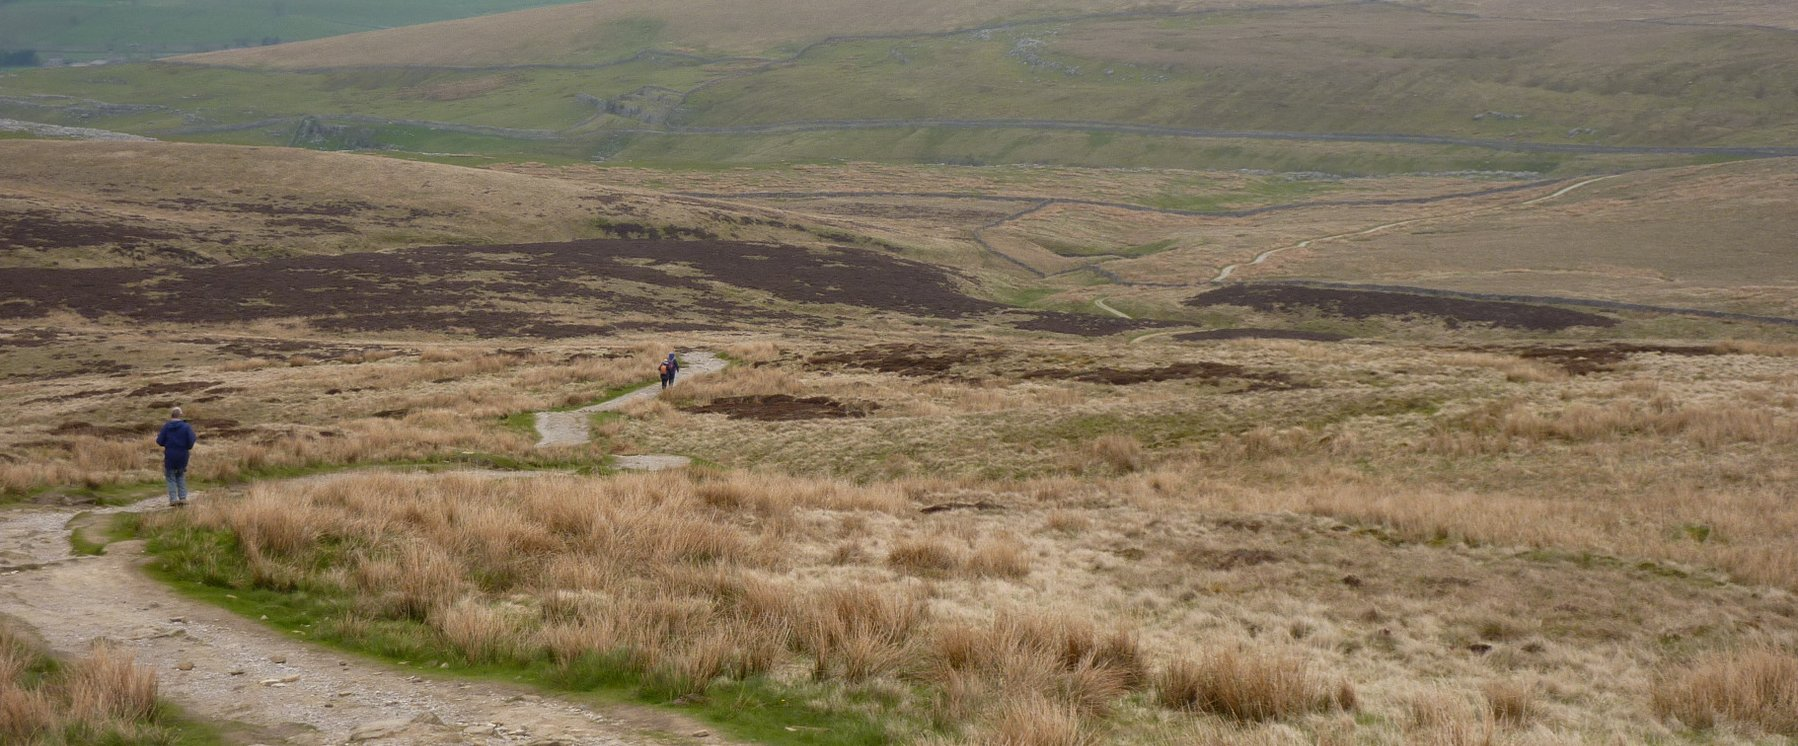 The long, tough descent from Pen-y-ghent to Horton-in-Ribblesdale